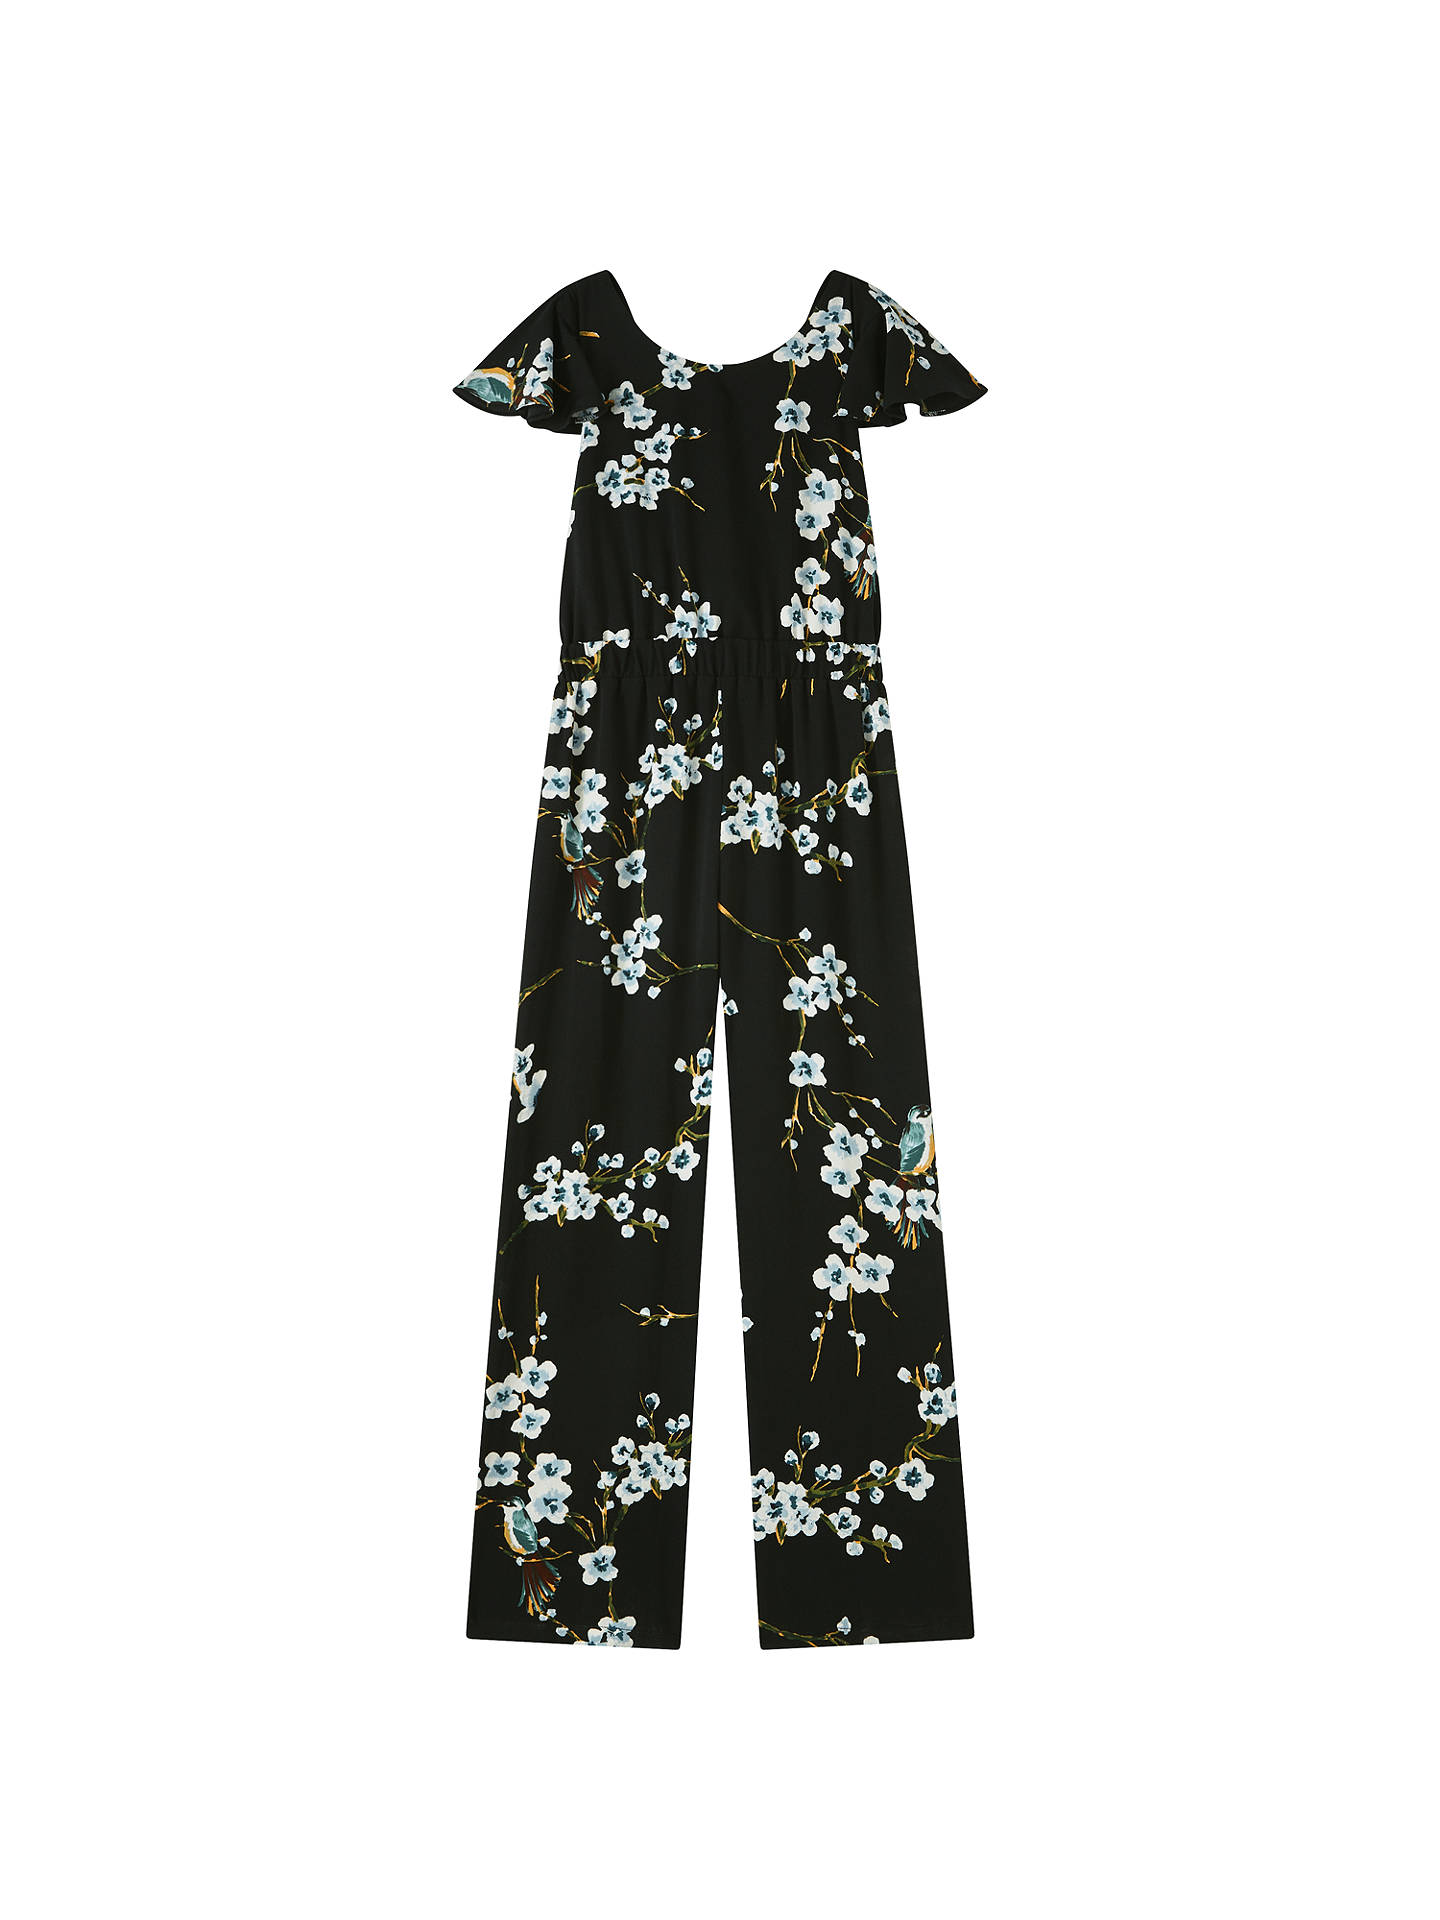 BuyJohn Lewis & Partners Girls' Floral Jumpsuit, Black, 12 years Online at johnlewis.com